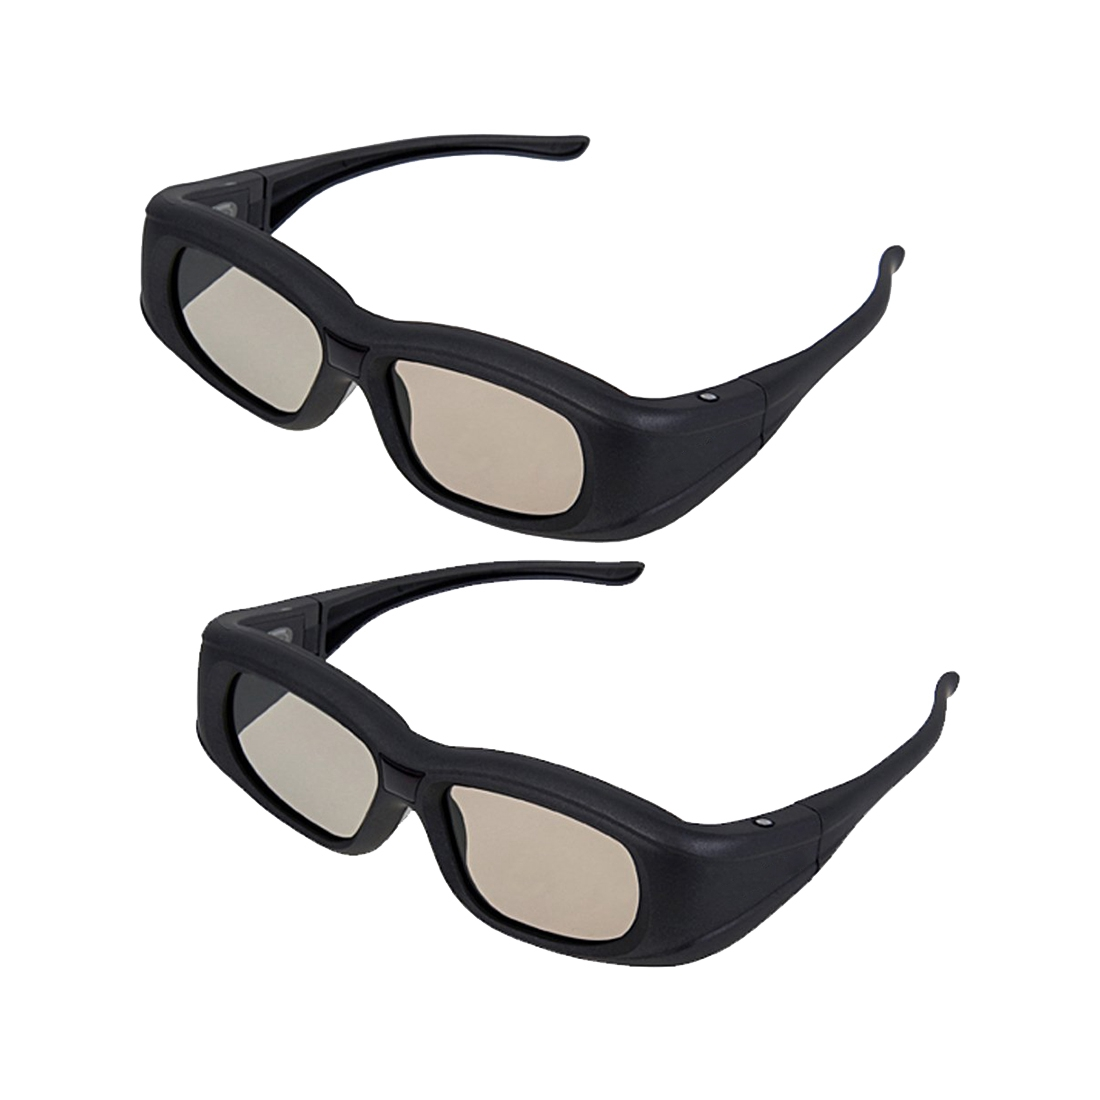 2 X Universal 3D Active Shutter Glasses (Bluetooth) For ...